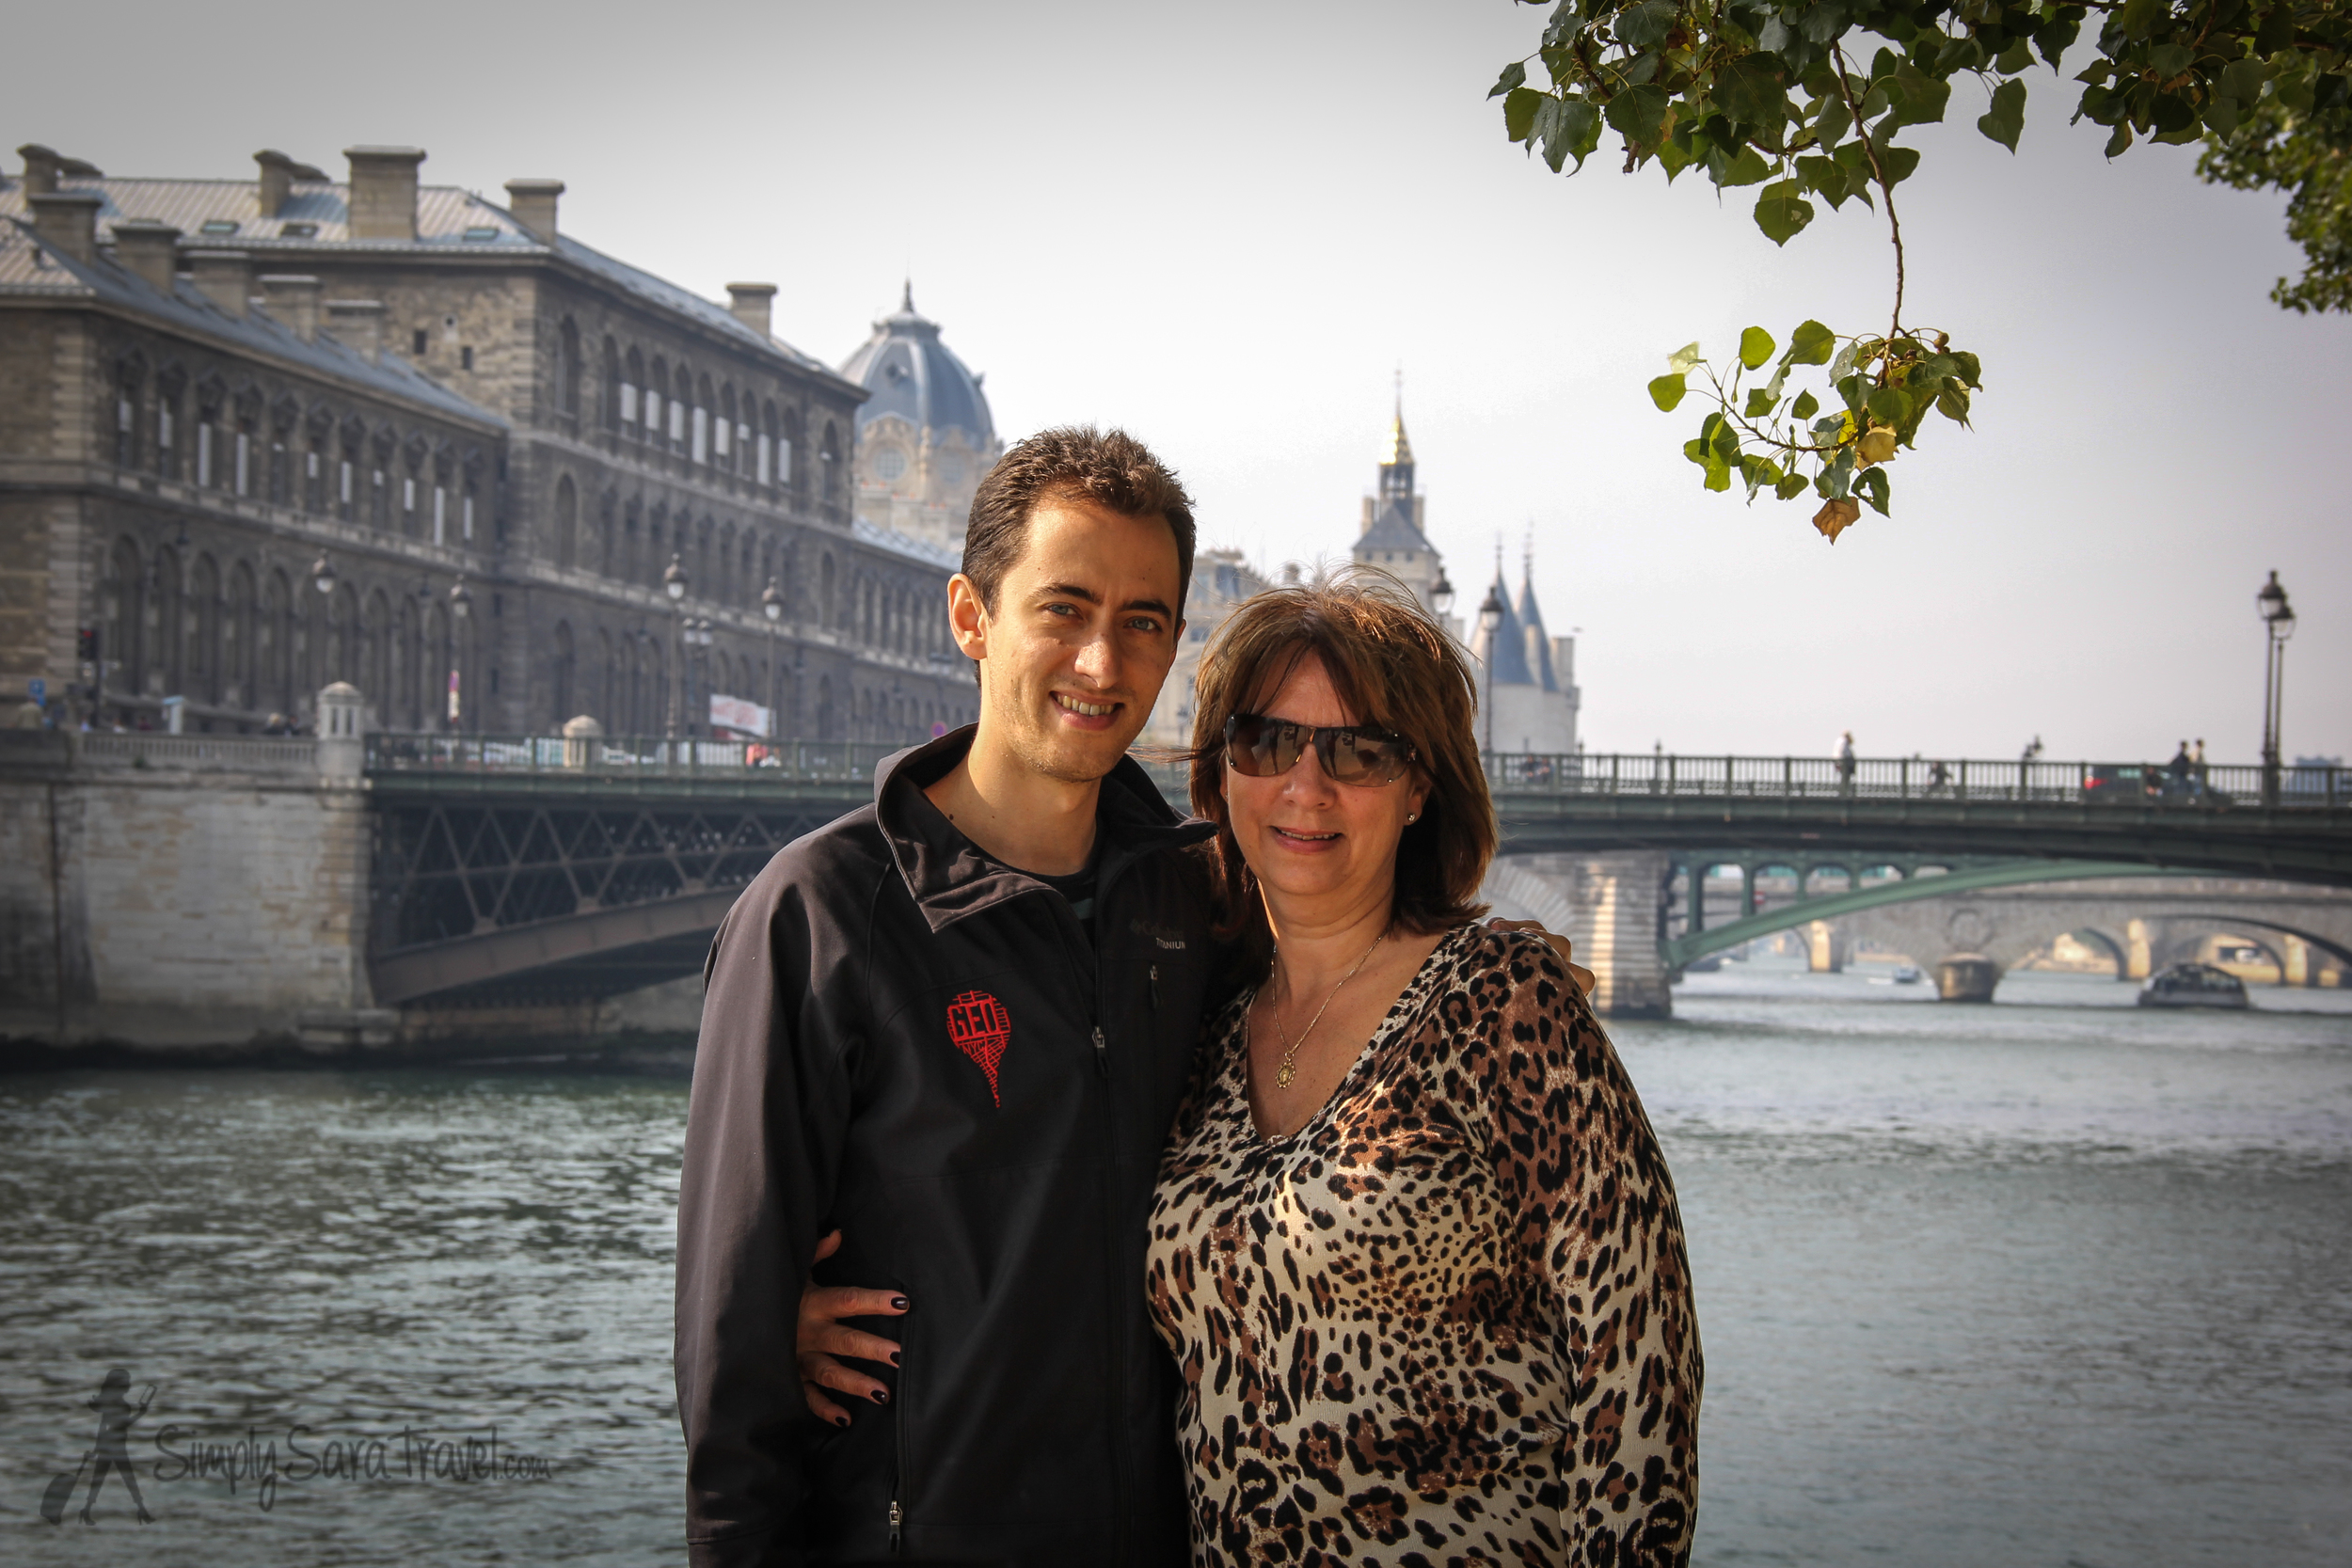 Michael and his beautiful Momma | The weather cooperated in mid-September when Michael's parents visited so we were able to show them one of our favorite activitiesin Paris: going on a picnic.